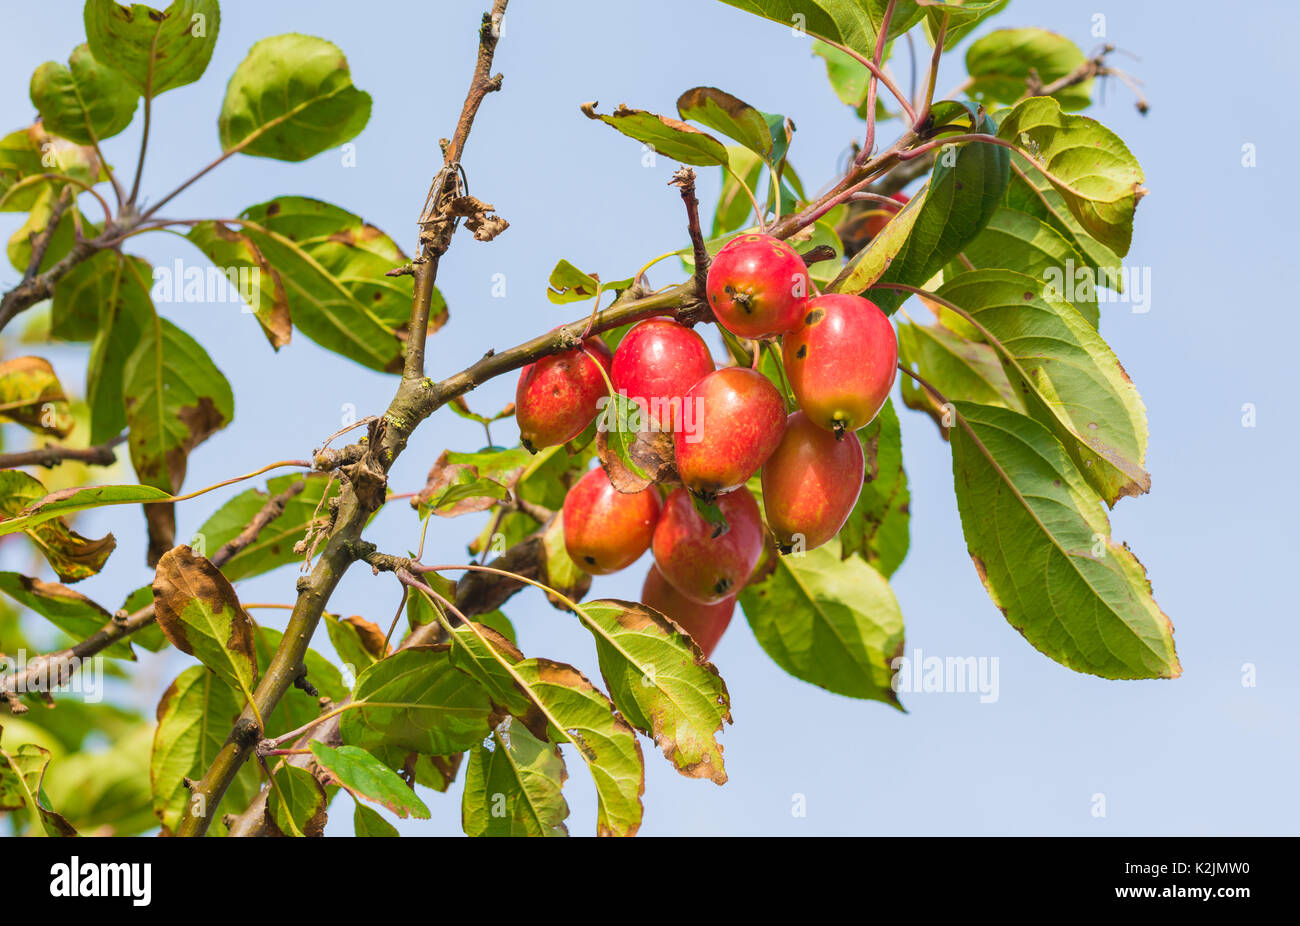 Crab Apple tree in late Summer with red fruit growing. Crabapple tree in the UK. - Stock Image